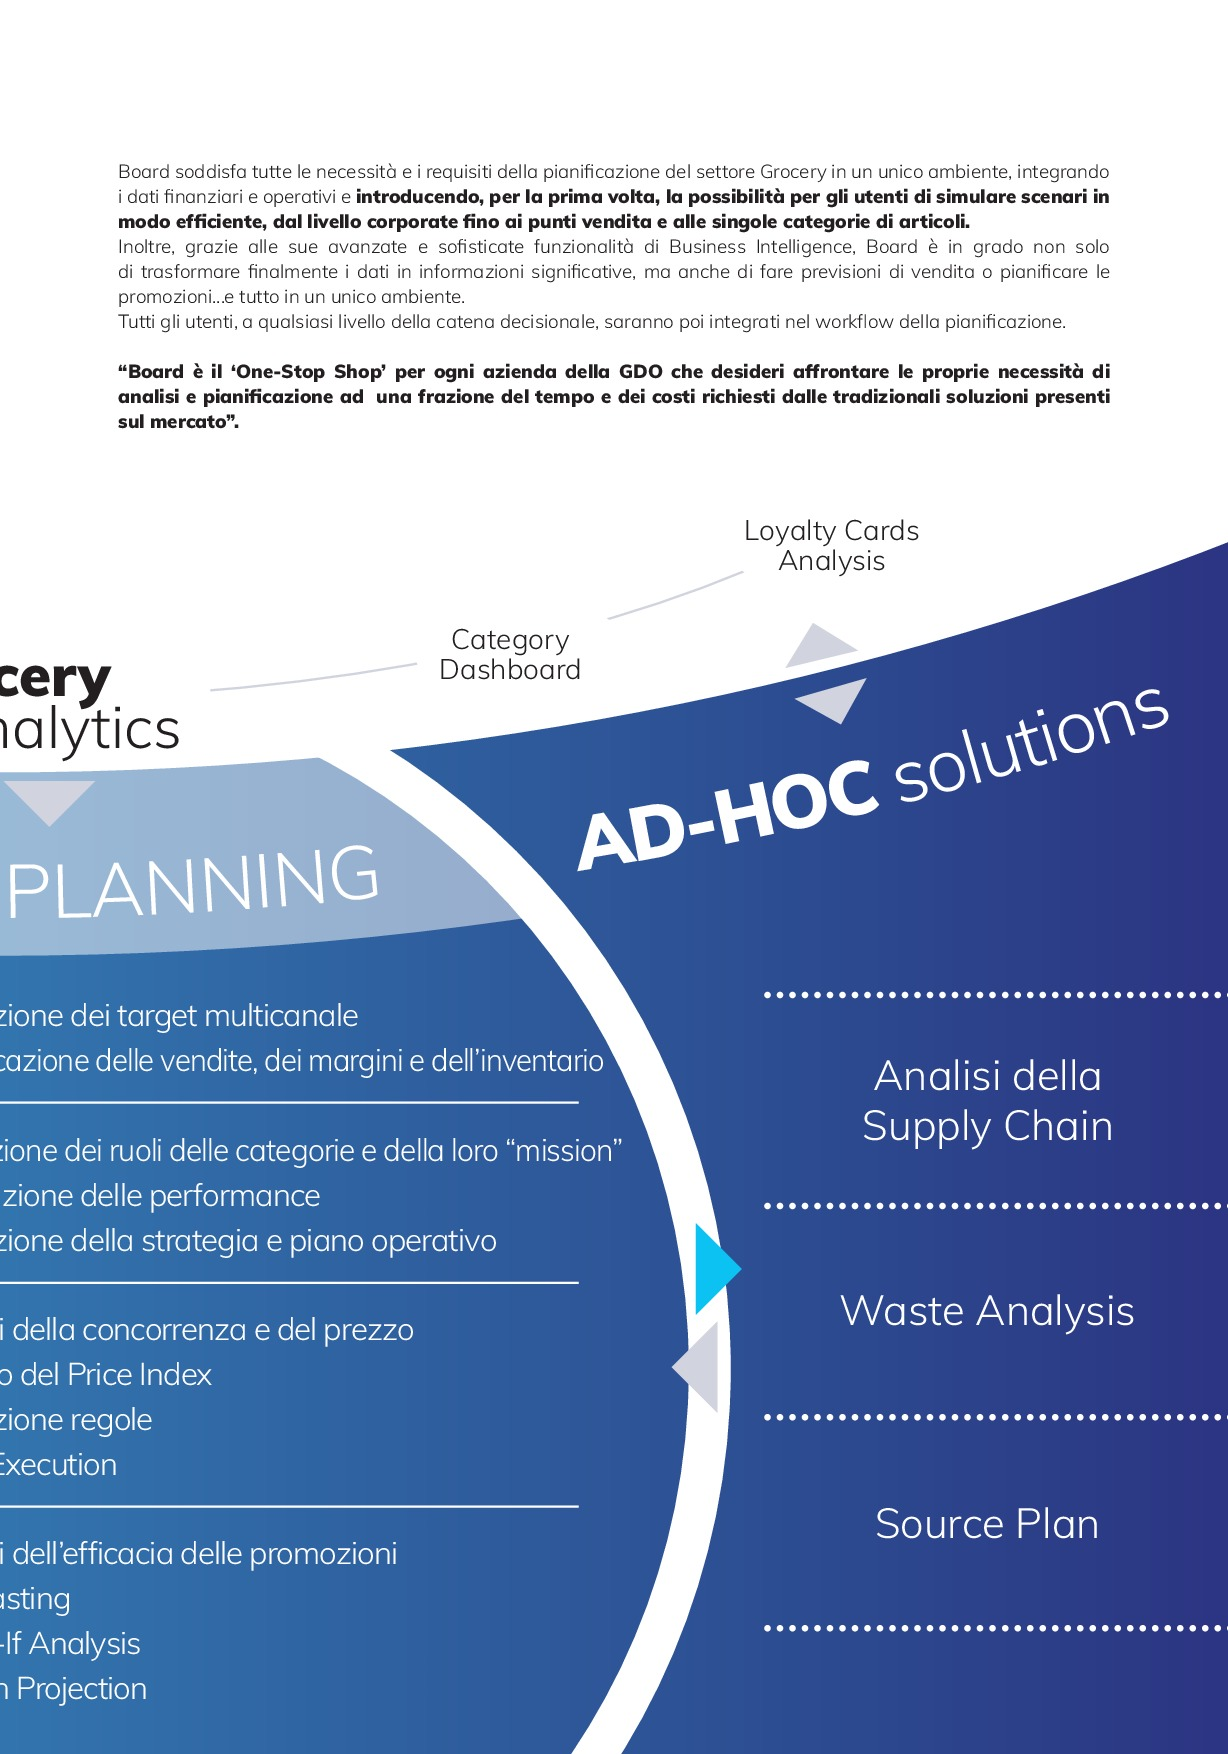 Reframing Grocery Retail Planning and Analytics | Page 5